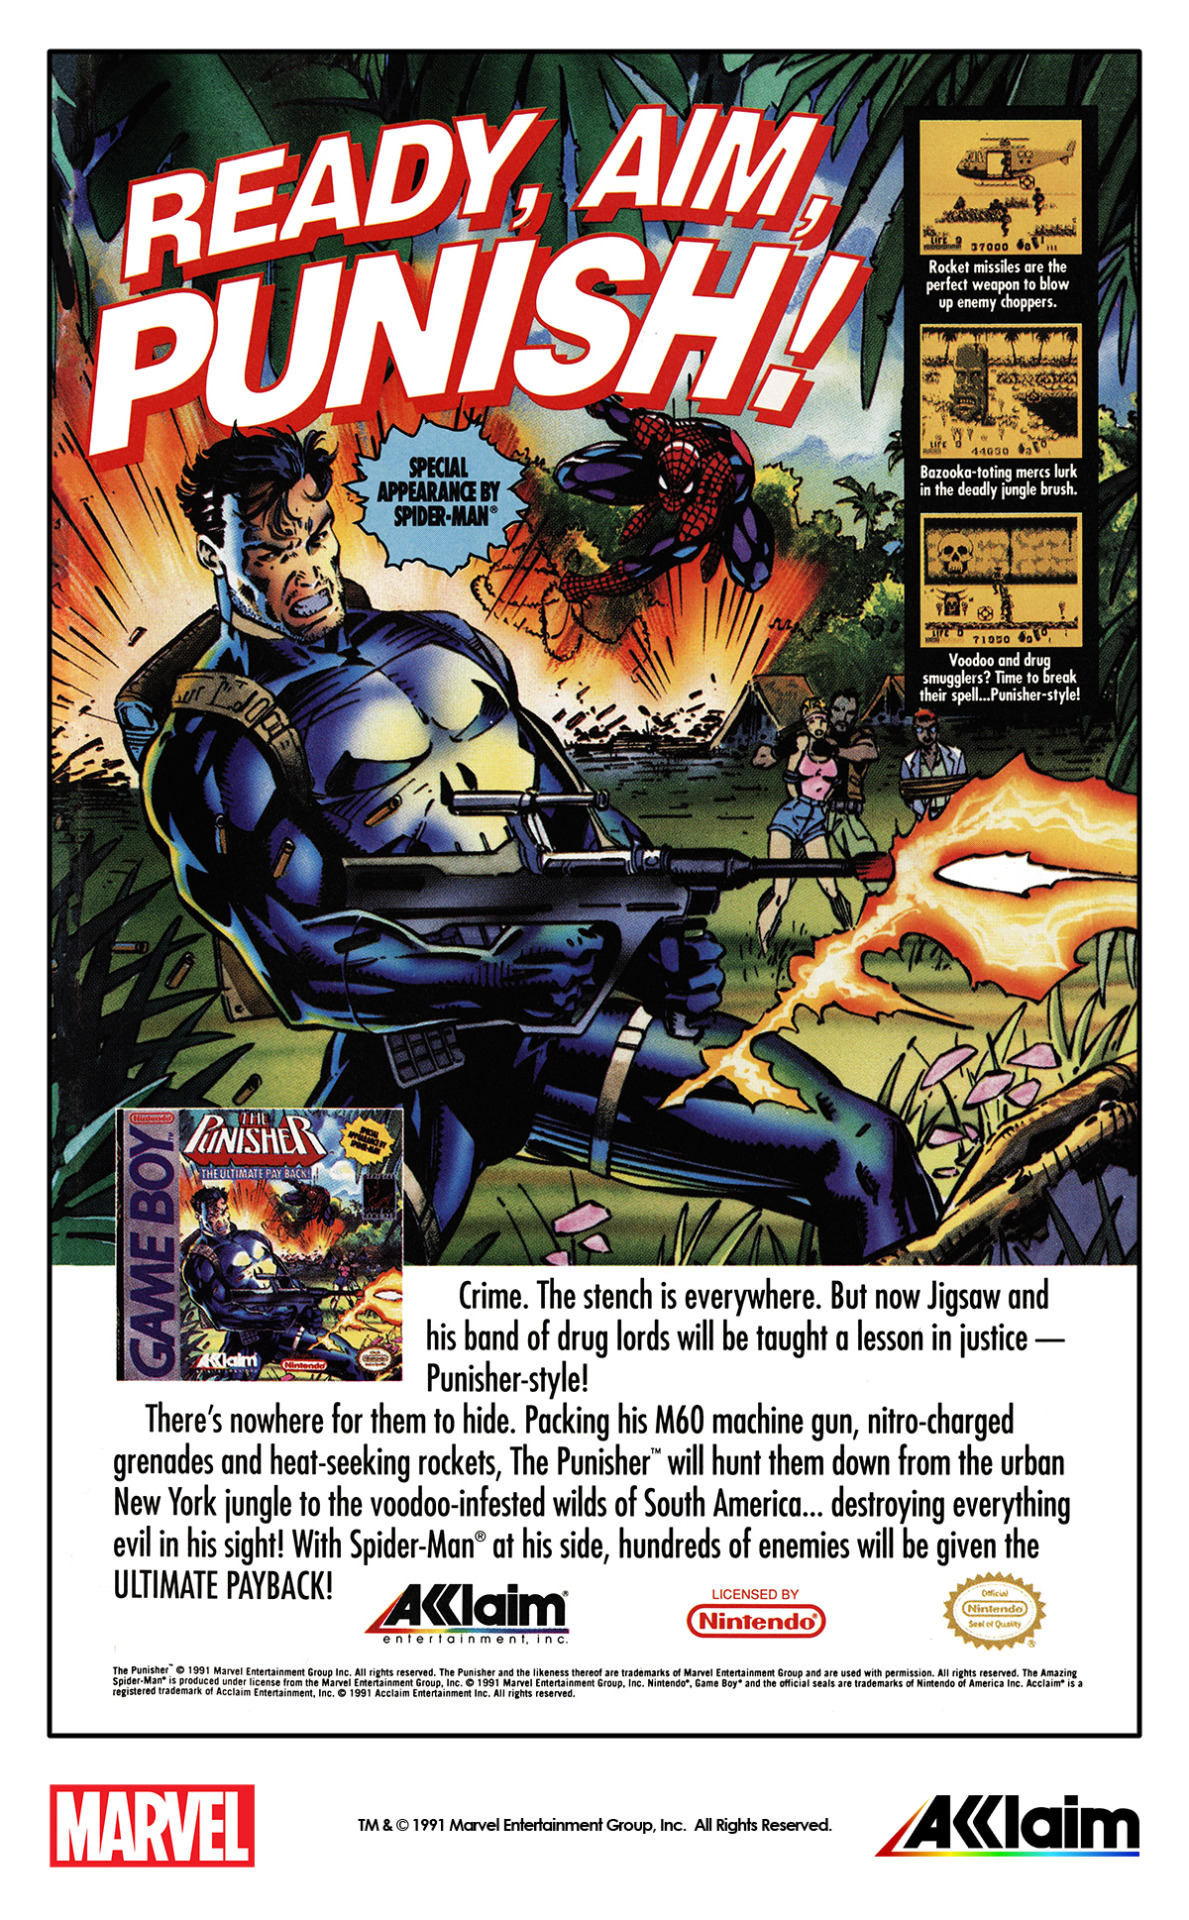 Acclaim Entertainment ad for The Punisher video game for the Nintendo Game Boy (1991) #marvel comics #marvel video games #the punisher#spider-man#acclaim entertinment#nintendo #nintendo game boy #marvel 1990s#marvel 1991